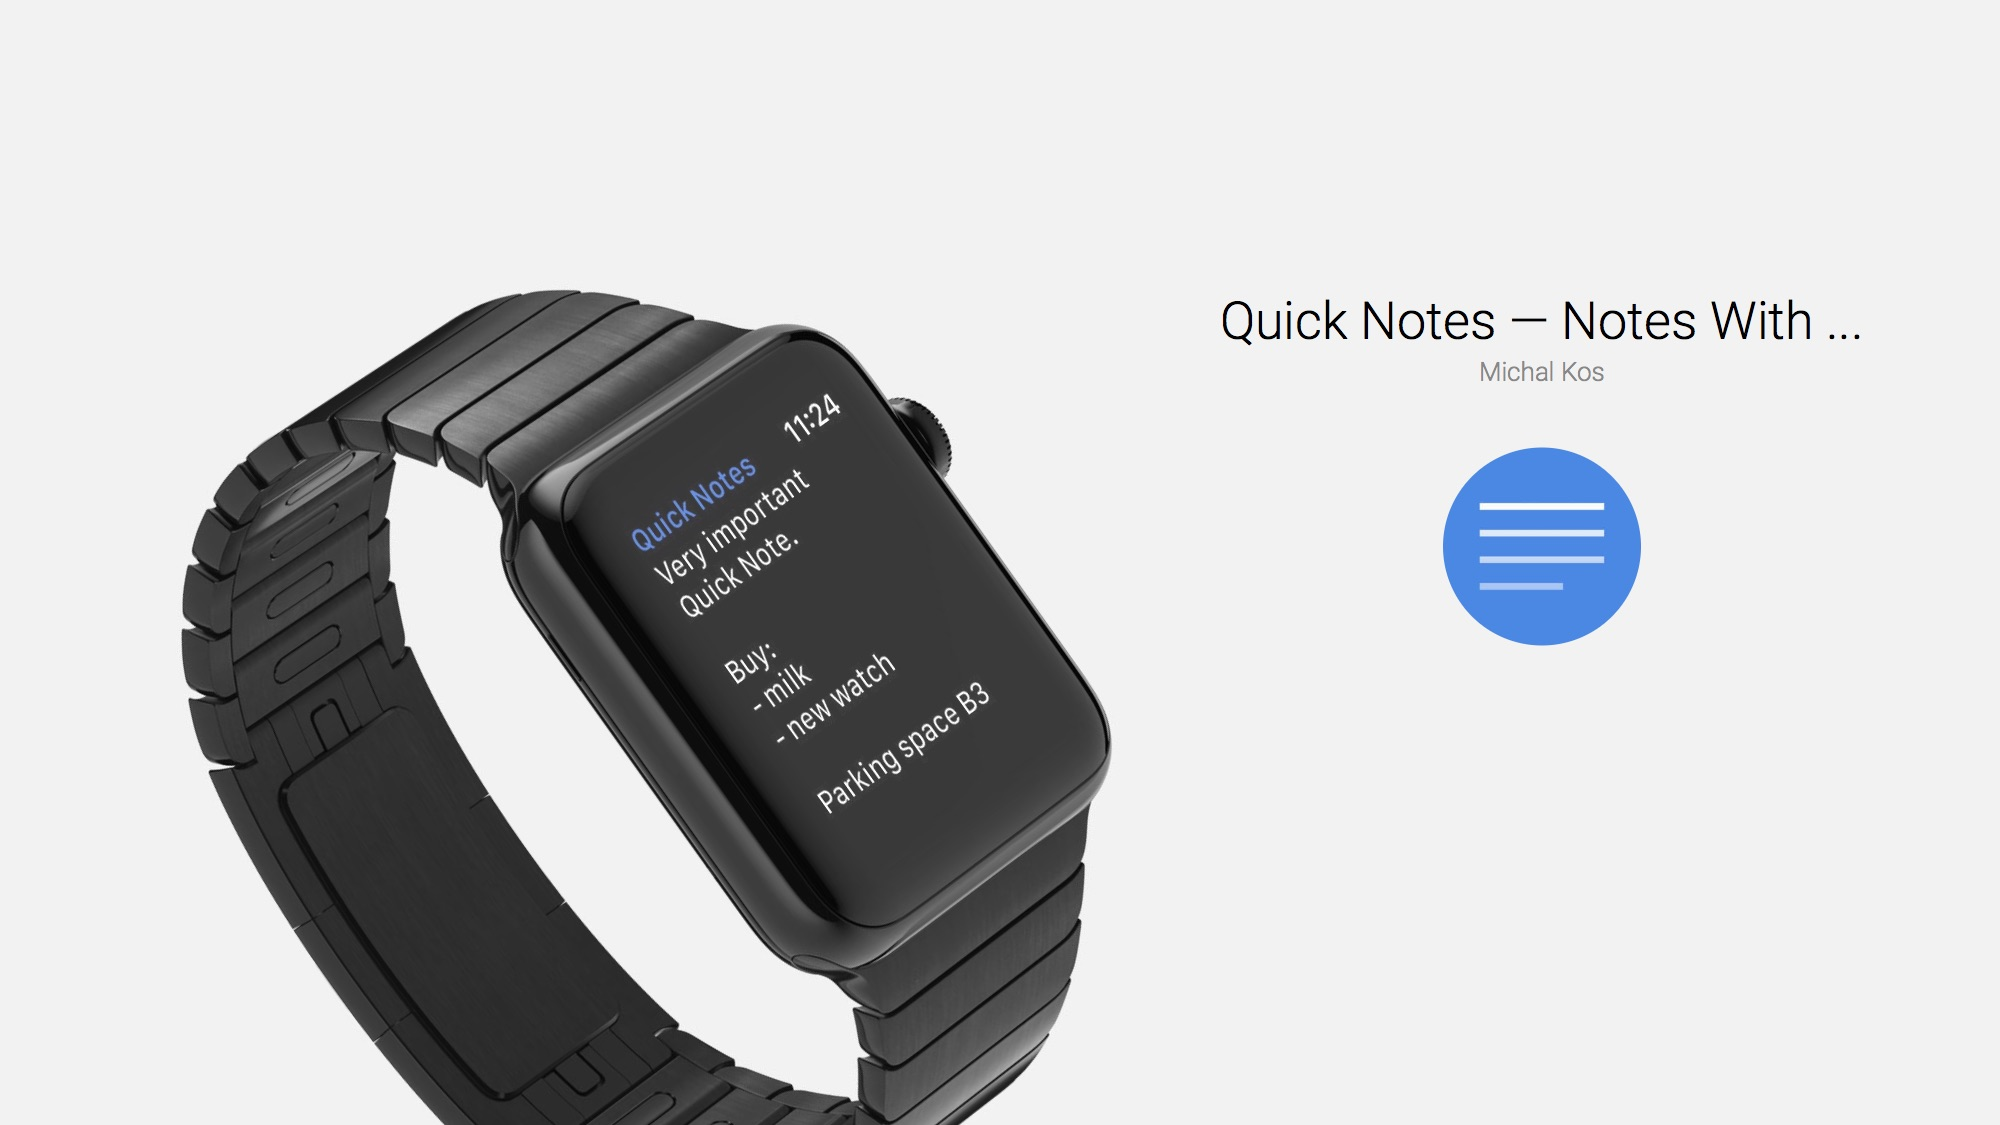 Dictating Notes on Apple Watch Is Easy With Quick Notes